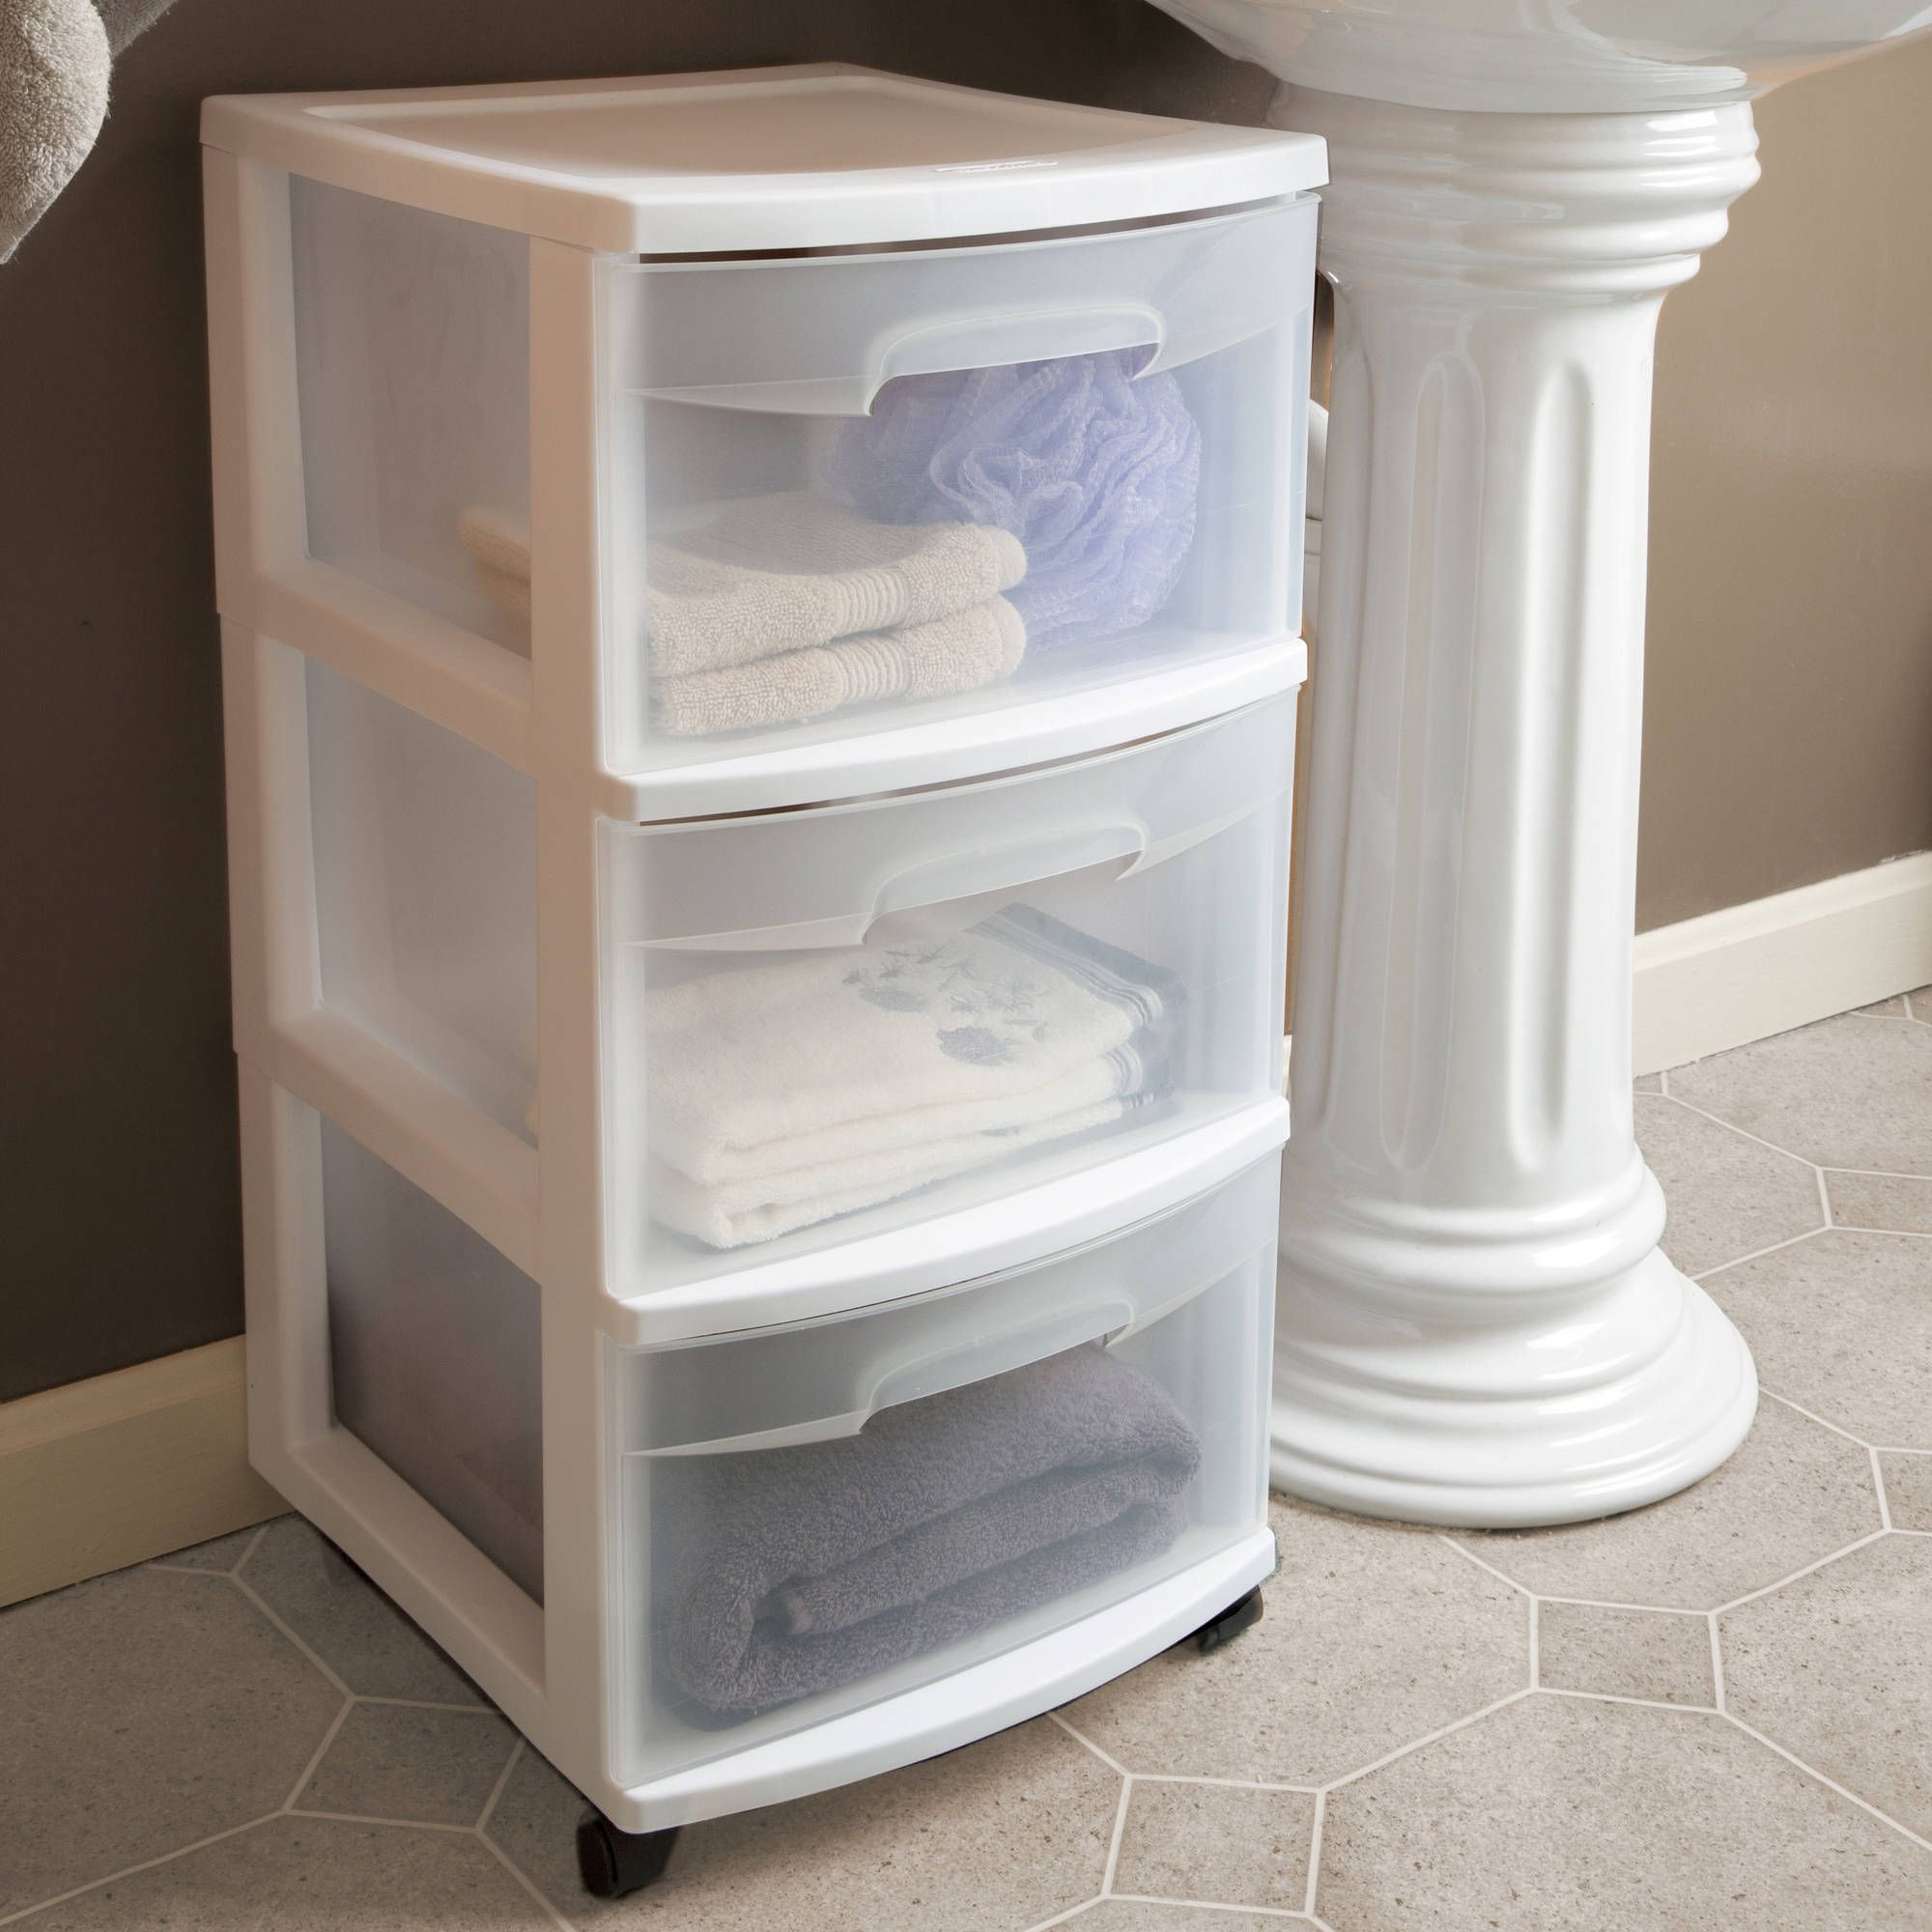 2 Drawer Acrylic Organizer In 2020 Plastic Storage Drawers Plastic Storage Cabinets Bathroom Drawer Storage